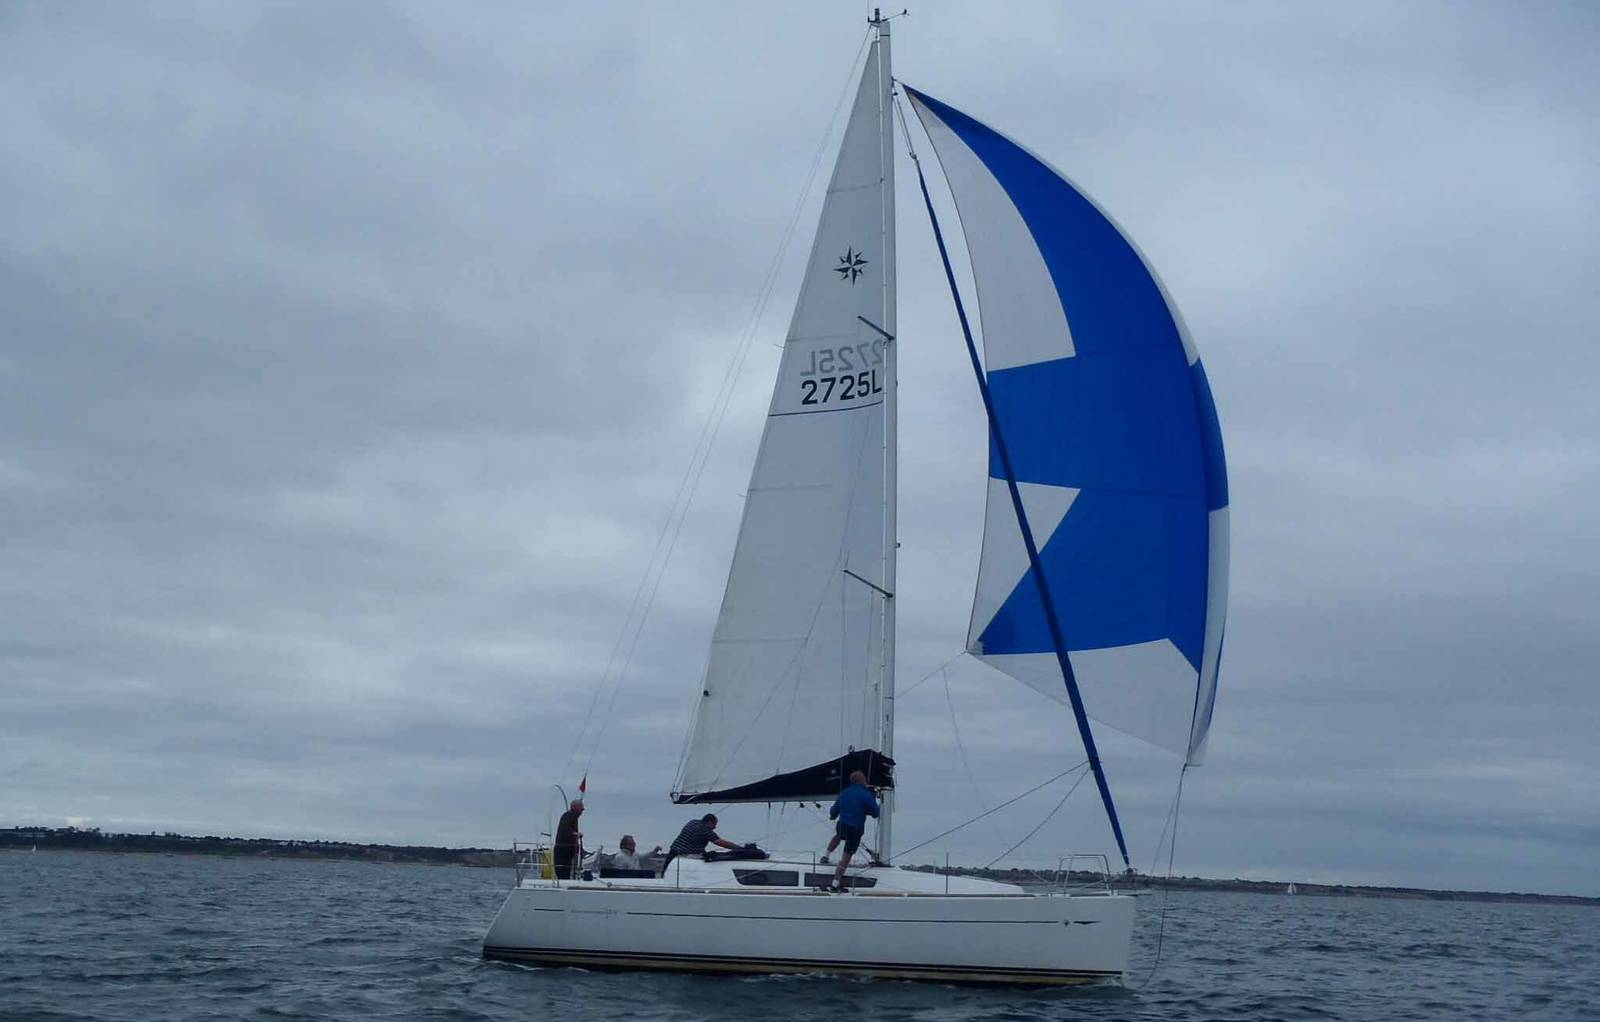 ... Sun Odyssey 331 with spinnaker